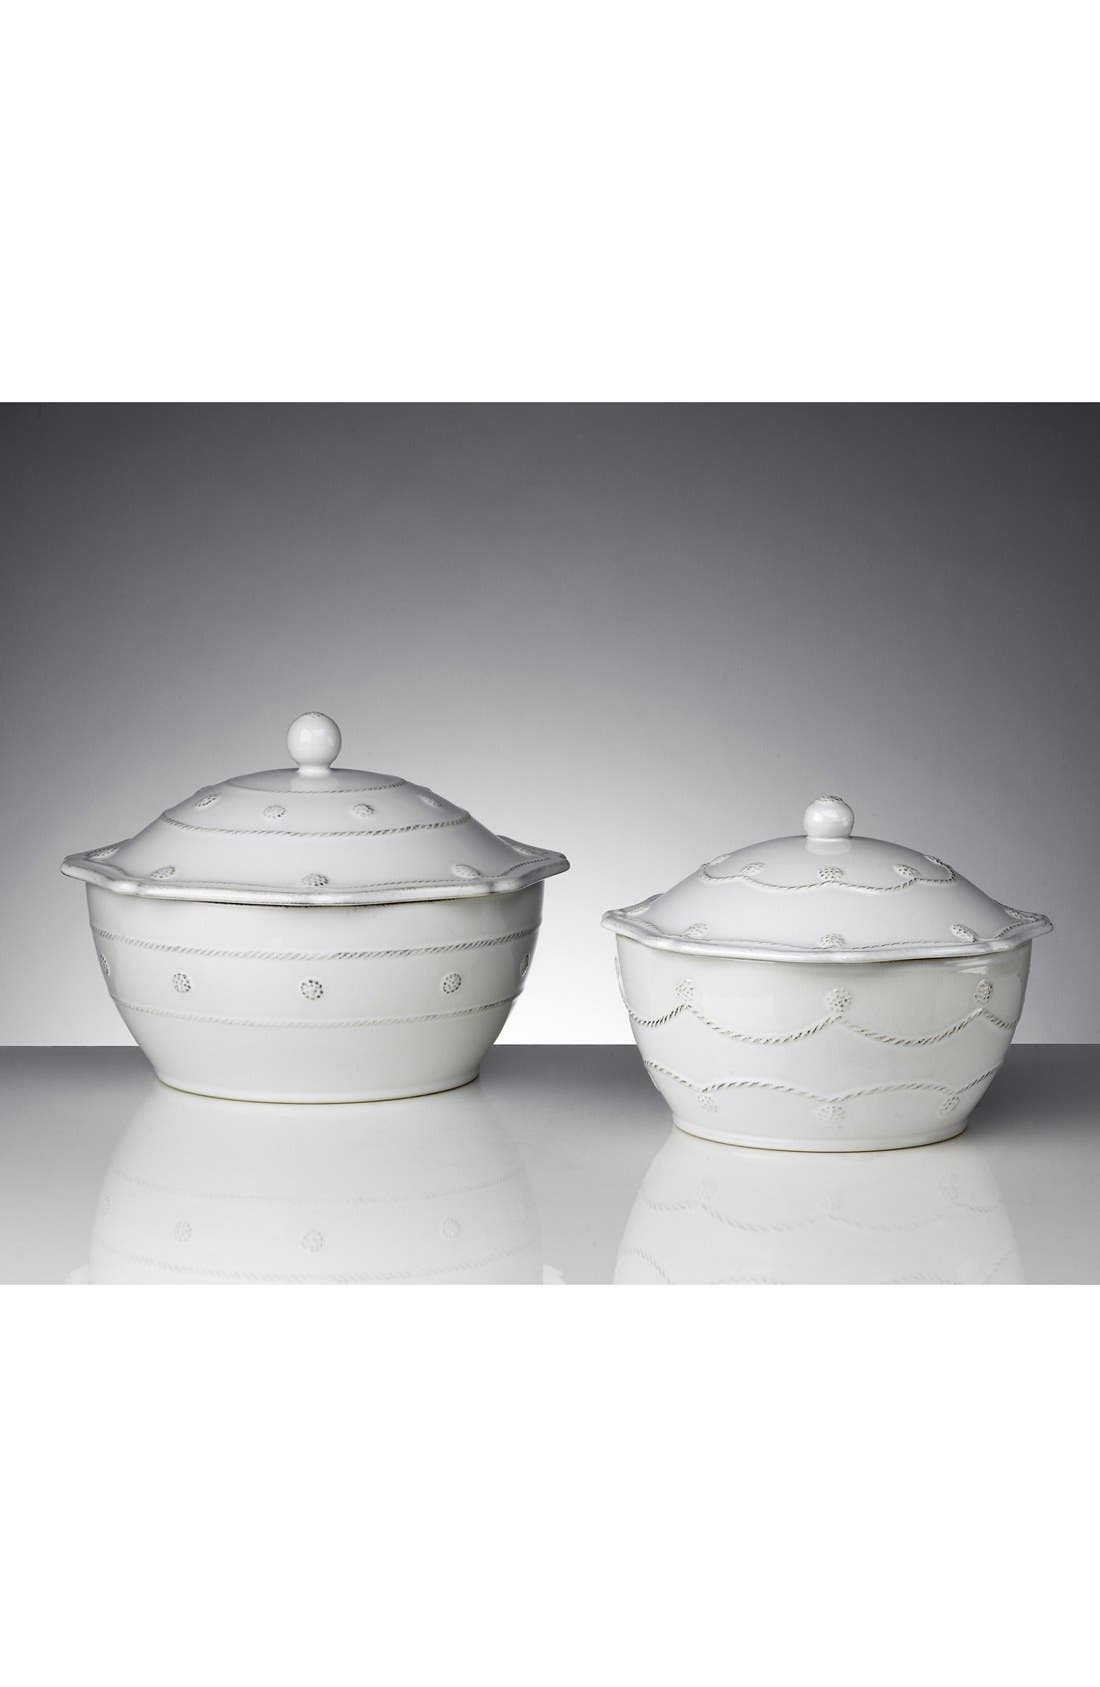 'Berry and Thread' Casserole Dish with Lid,                             Alternate thumbnail 2, color,                             100